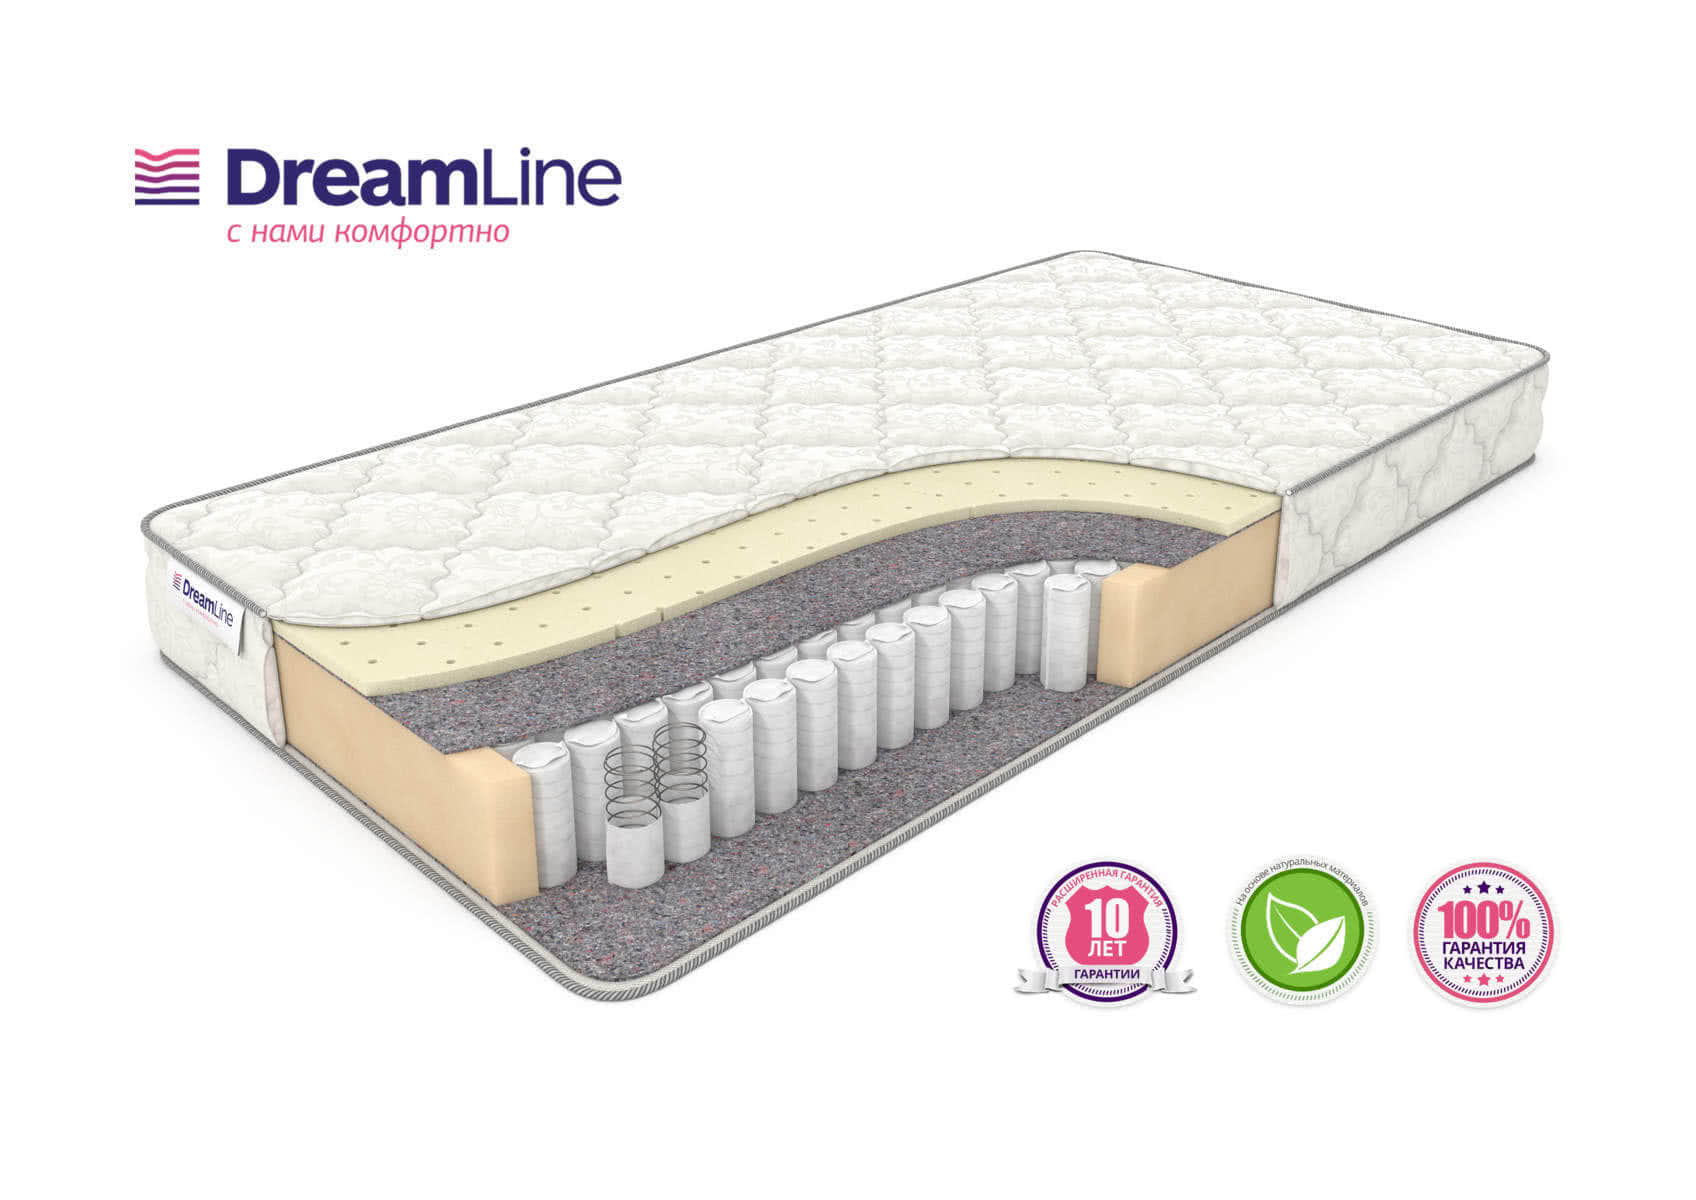 ������ DreamLine Single Sleep 2 Tfk 150�195 �� - DreamLine������� DreamLine Single<br>������������� ��������-������ ������ �� ����������� �������� TFK (256 ��/�2), � ���������� �� ������������ �������(2 ��).<br>����� �� ���������� ��������.<br>������: 18 ��.<br>��������: �� 110 ��. ������ �������� ����� ���� 2 ���: 150 x 195 ��<br><br>���: ���������<br>������� �������: ���� ������� �������<br>��������� 1 �������: ������<br>������ 1 �������: ������<br>���-�� ��� ���������: 0<br>��� ������: �����������<br>������ �� ��.�: 256<br>������������ ��� �� �������� ����� ��: 110<br>������ ��: 18<br>��� �����: �������<br>������ �� �����: ���<br>����/����: ���<br>��������� ��������: ���<br>�������: ���<br>������: ������ DreamLine Single Sleep 2 Tfk 150�195 �� �������� ����� ���� 2 ���<br>������ ��: 150<br>����� ��: 195<br>�������: Single